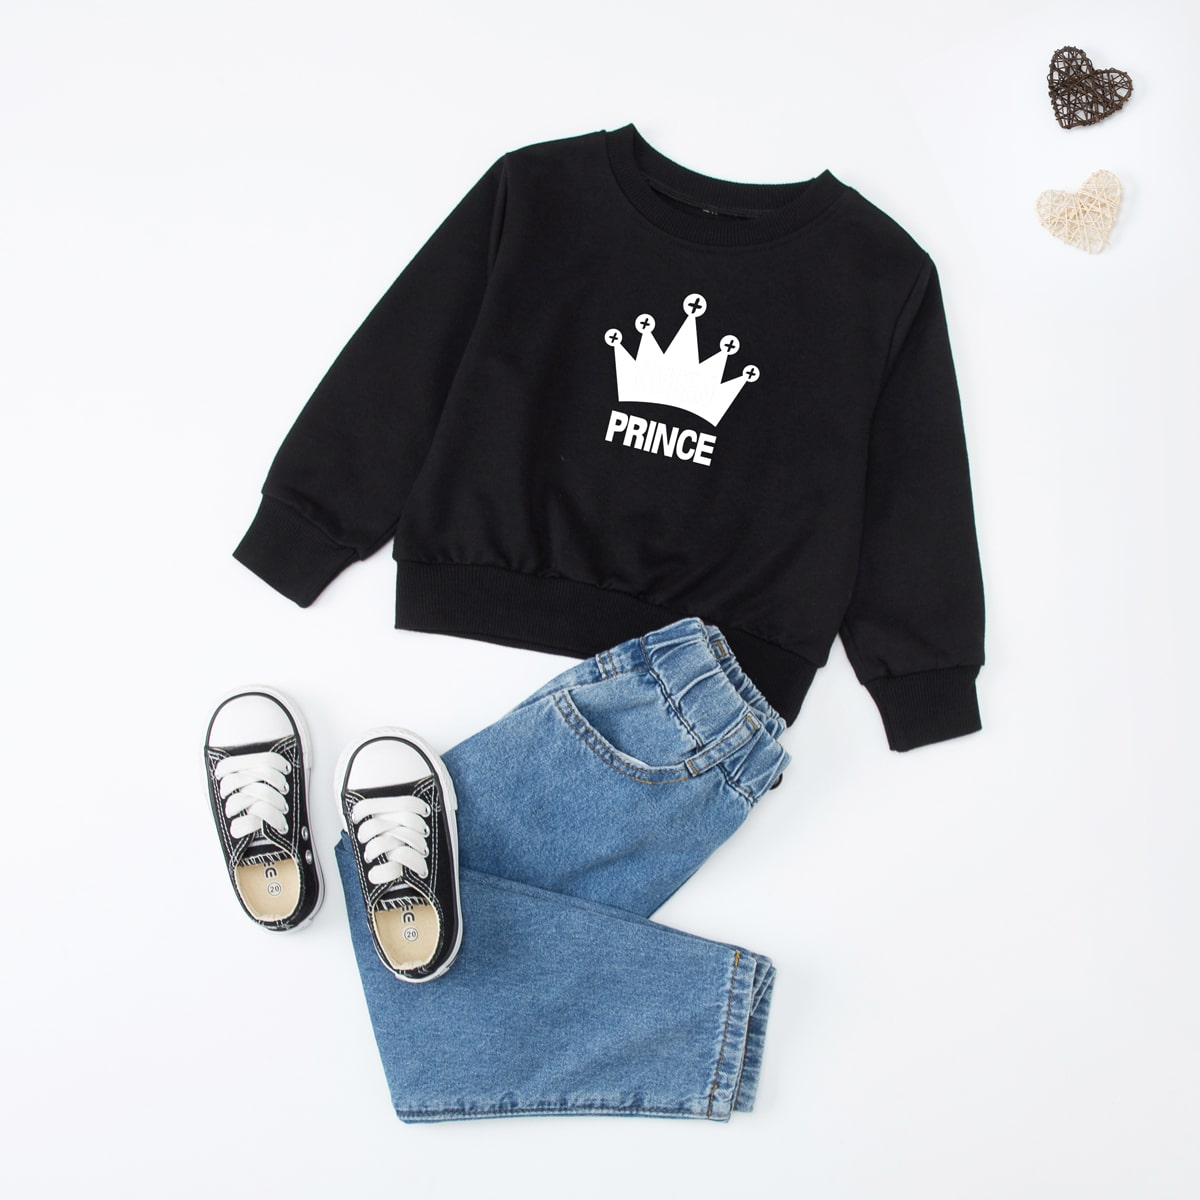 Toddler Boys 1pc Crown & Letter Graphic Sweatshirt, SHEIN  - buy with discount